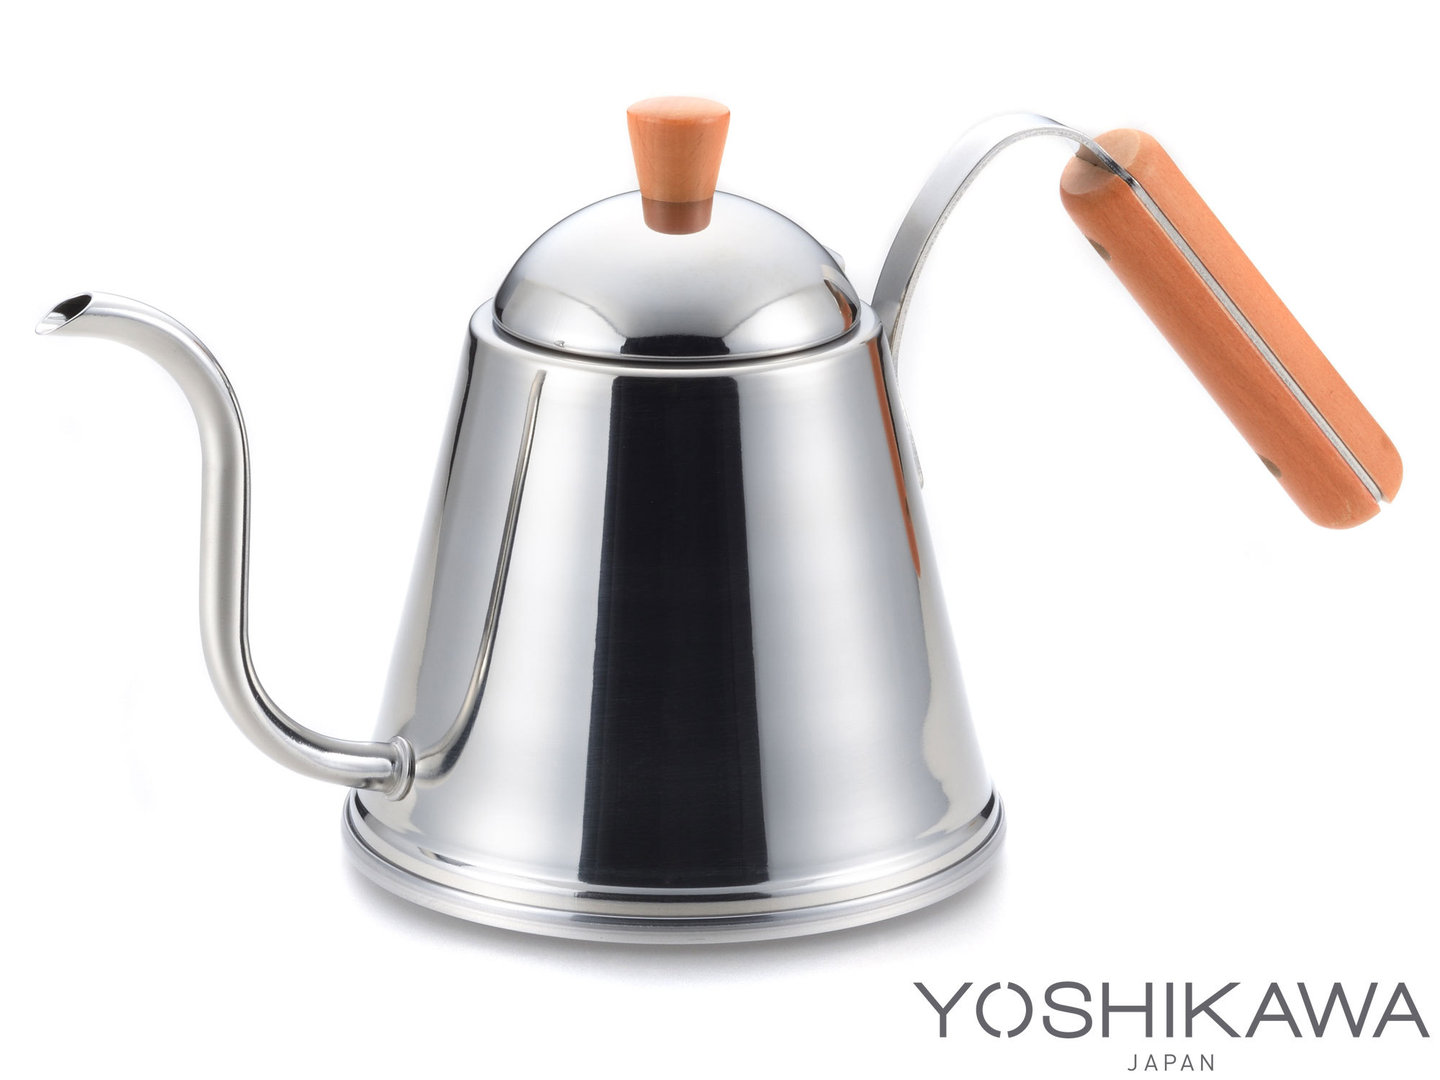 YOSHIKAWA water kettle CAFE TIME stainless steel